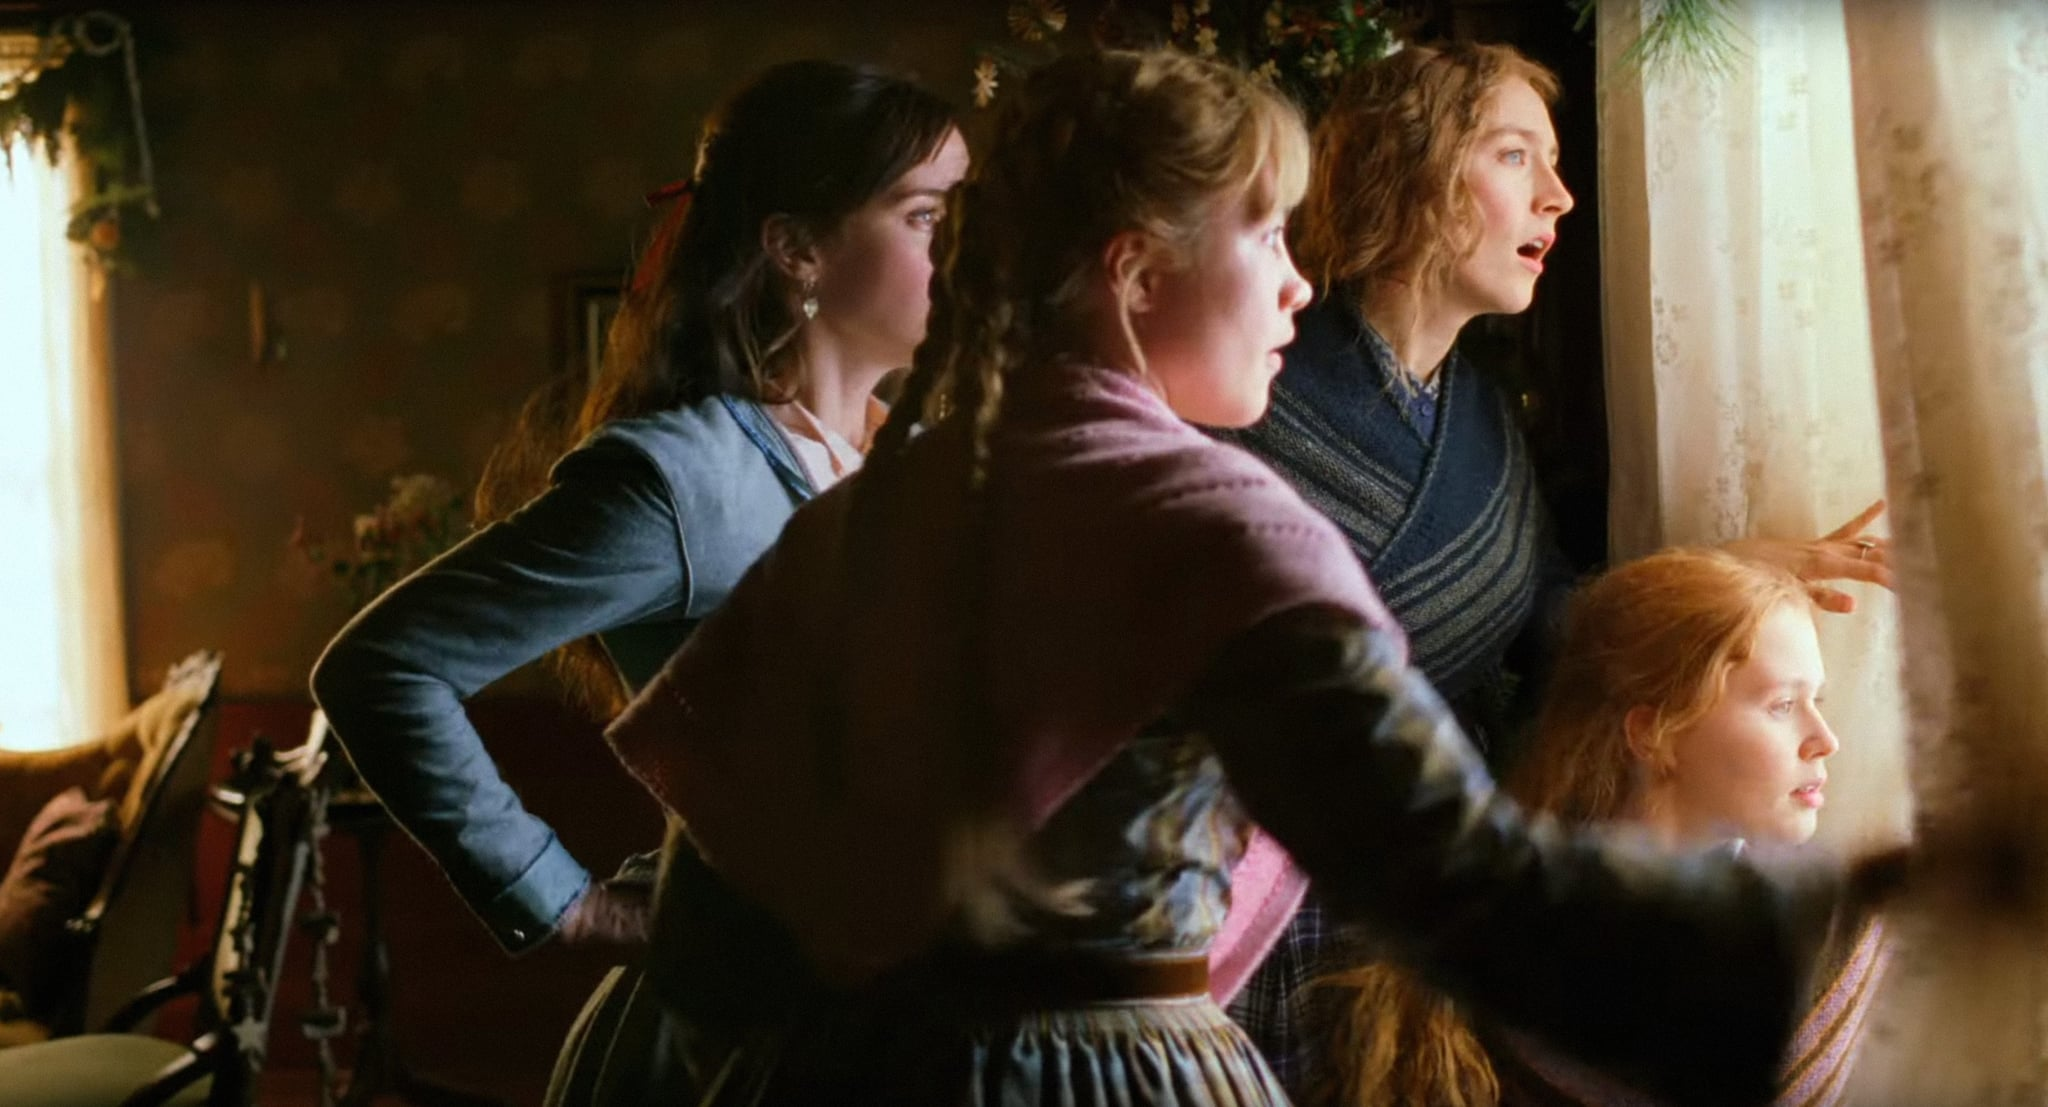 LITTLE WOMEN, from left: Emma Watson as Meg, Florence Pugh as Amy, Saoirse Ronan as Jo, Eliza Scanlen as Beth, 2019.  Columbia Pictures / courtesy Everett Collection